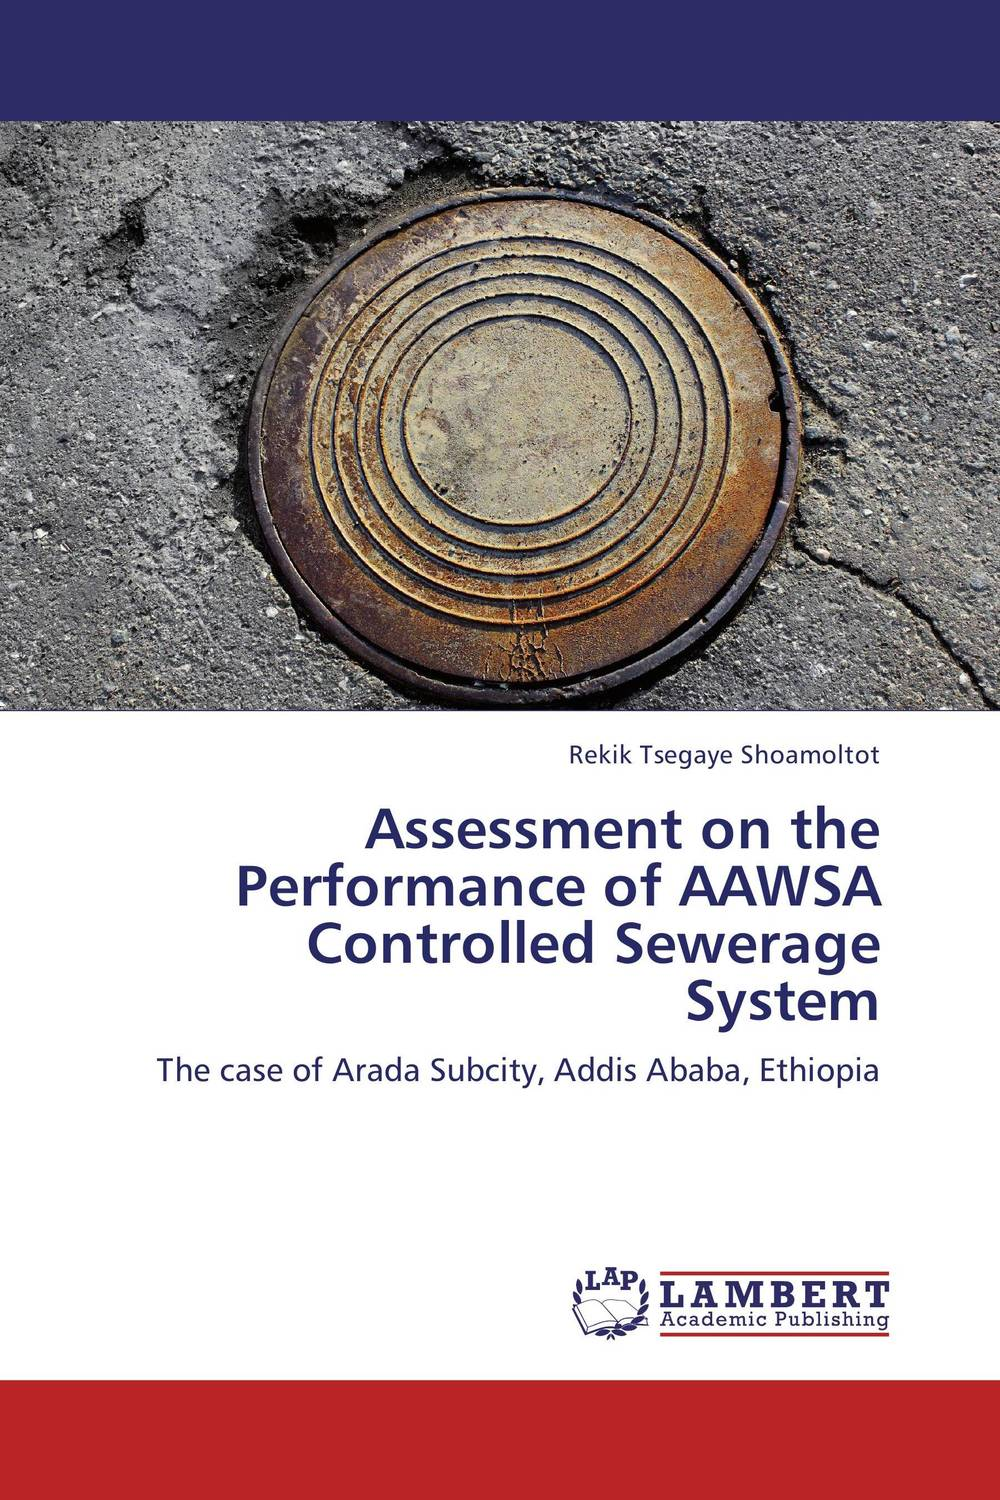 Assessment on the Performance of AAWSA Controlled Sewerage System 7 8 plunger check valve with extension tube can be used in commercial refrigeration system domestic and industrial chiller